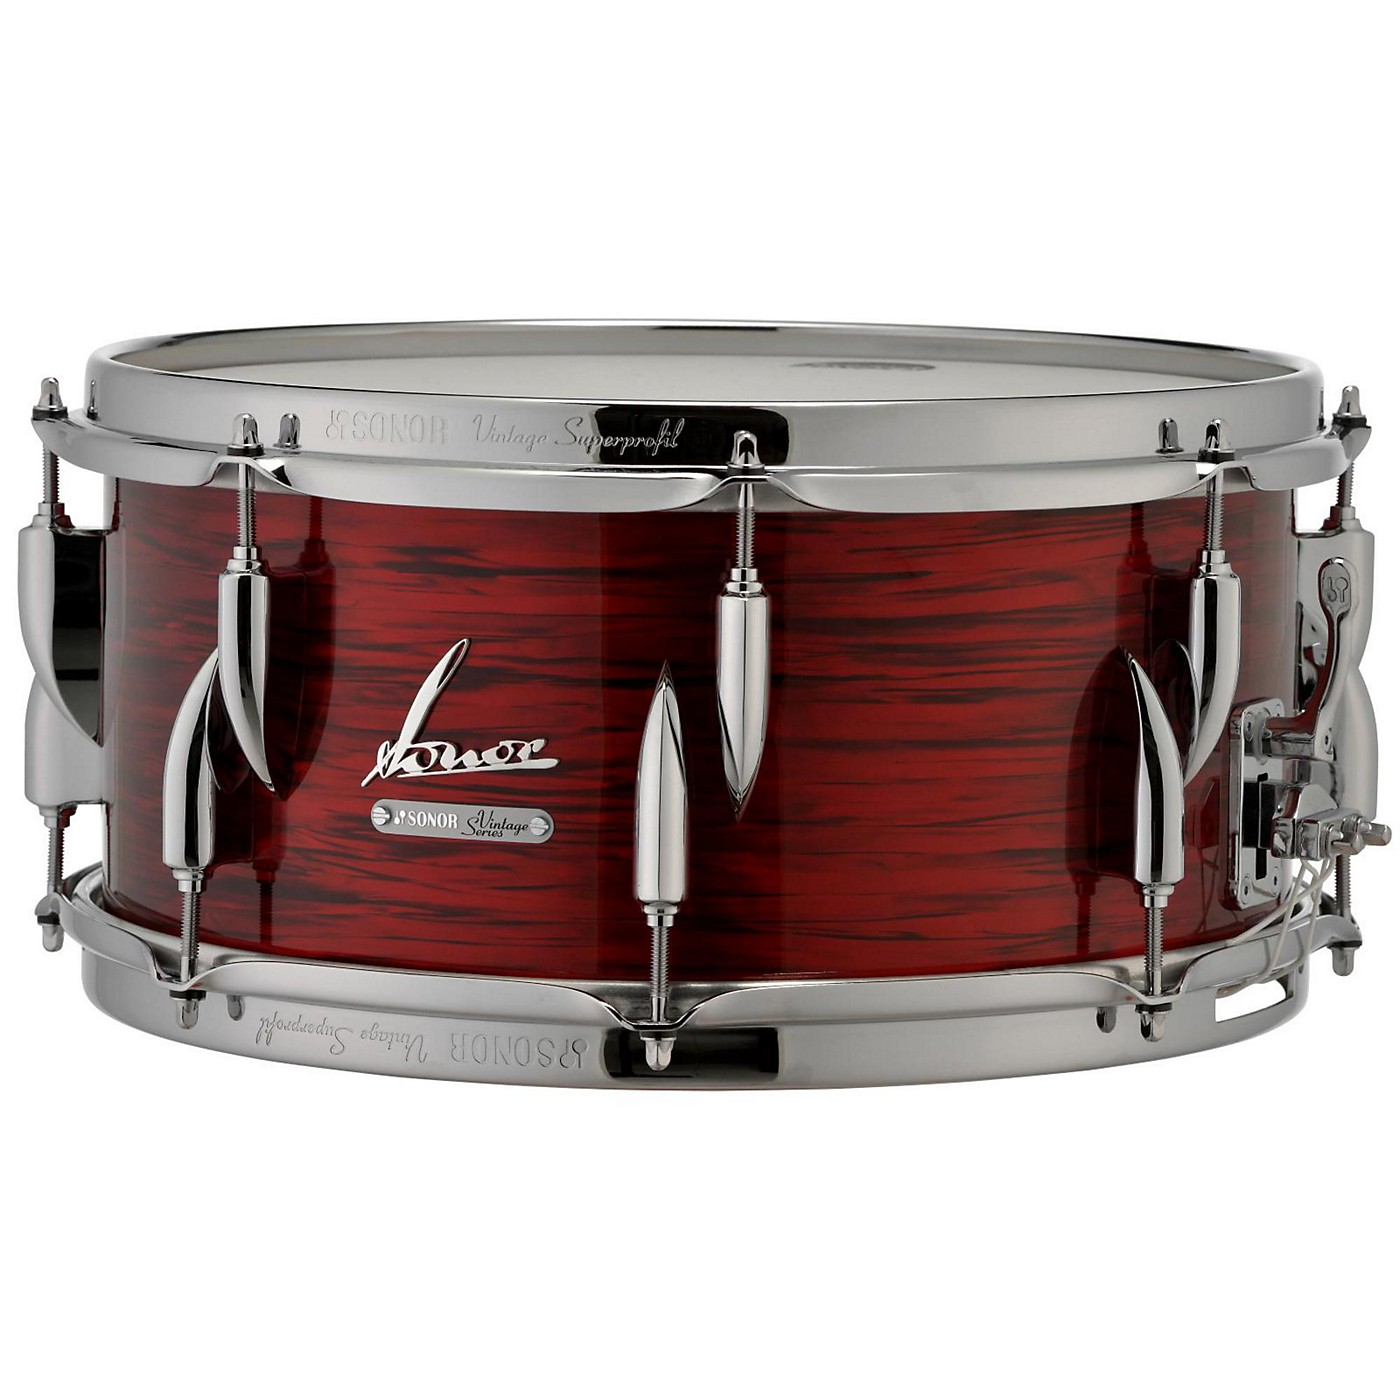 SONOR Vintage Series Snare Drum 14x6.5 in. thumbnail